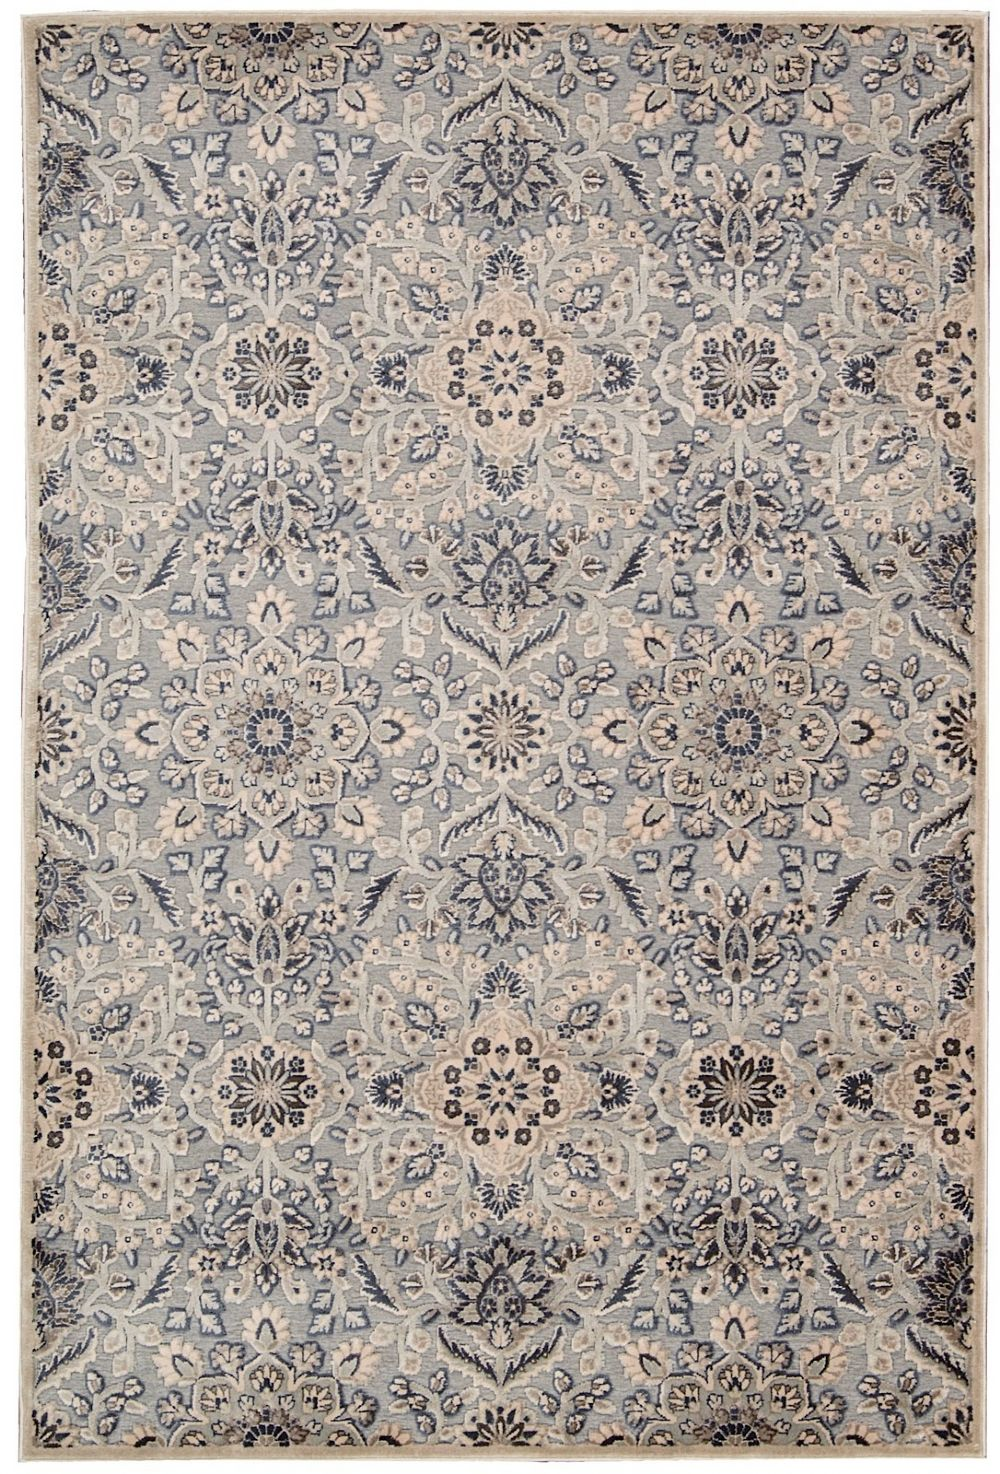 kathy ireland bel air marseille transitional area rug collection